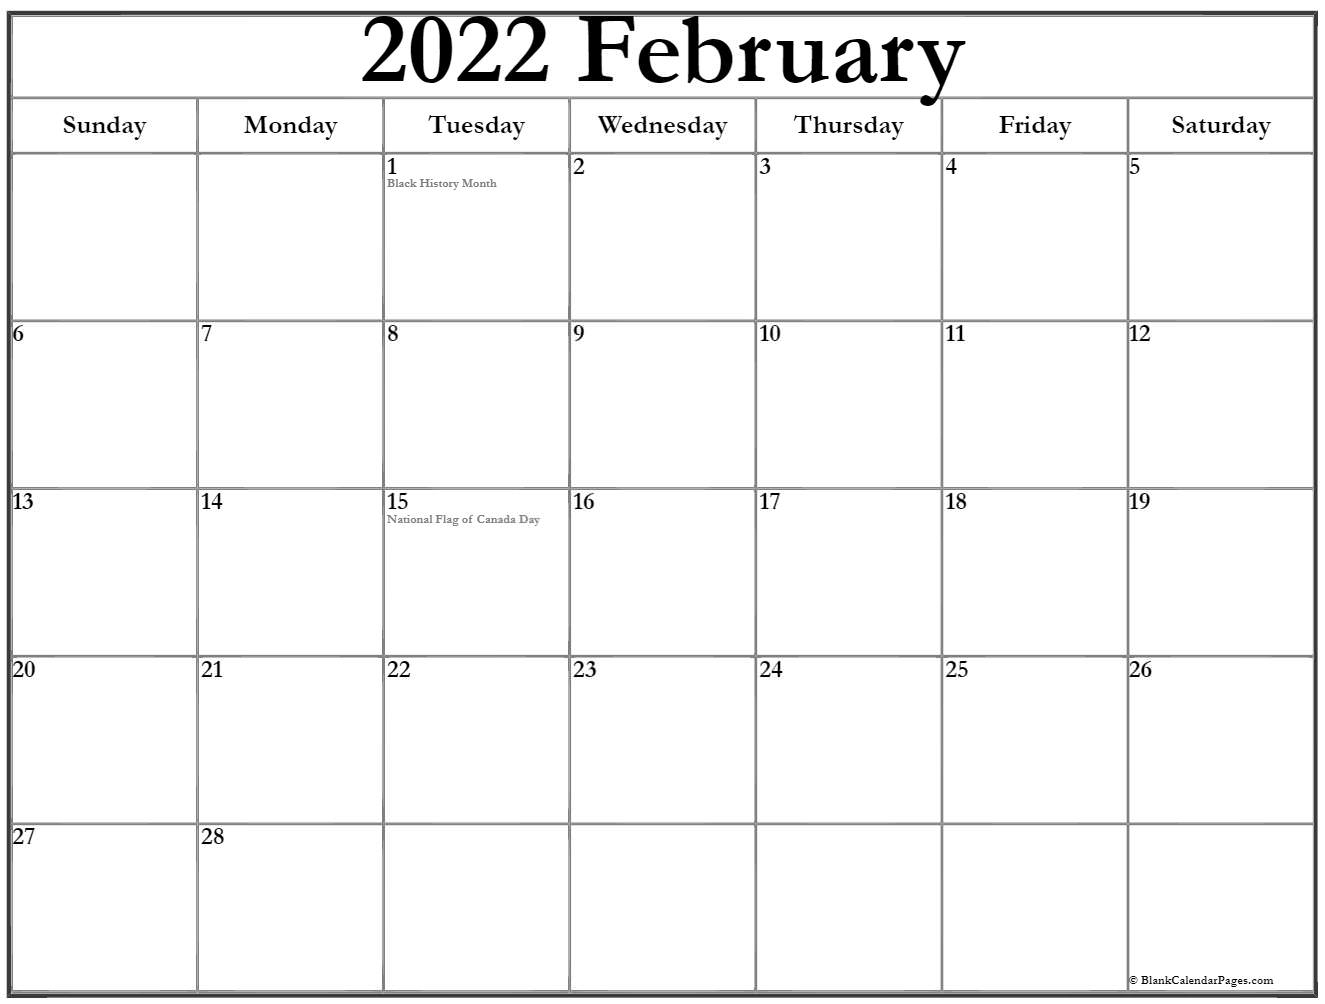 February 2022 Calendar With Holidays In Picture Of Calendar For February 2022